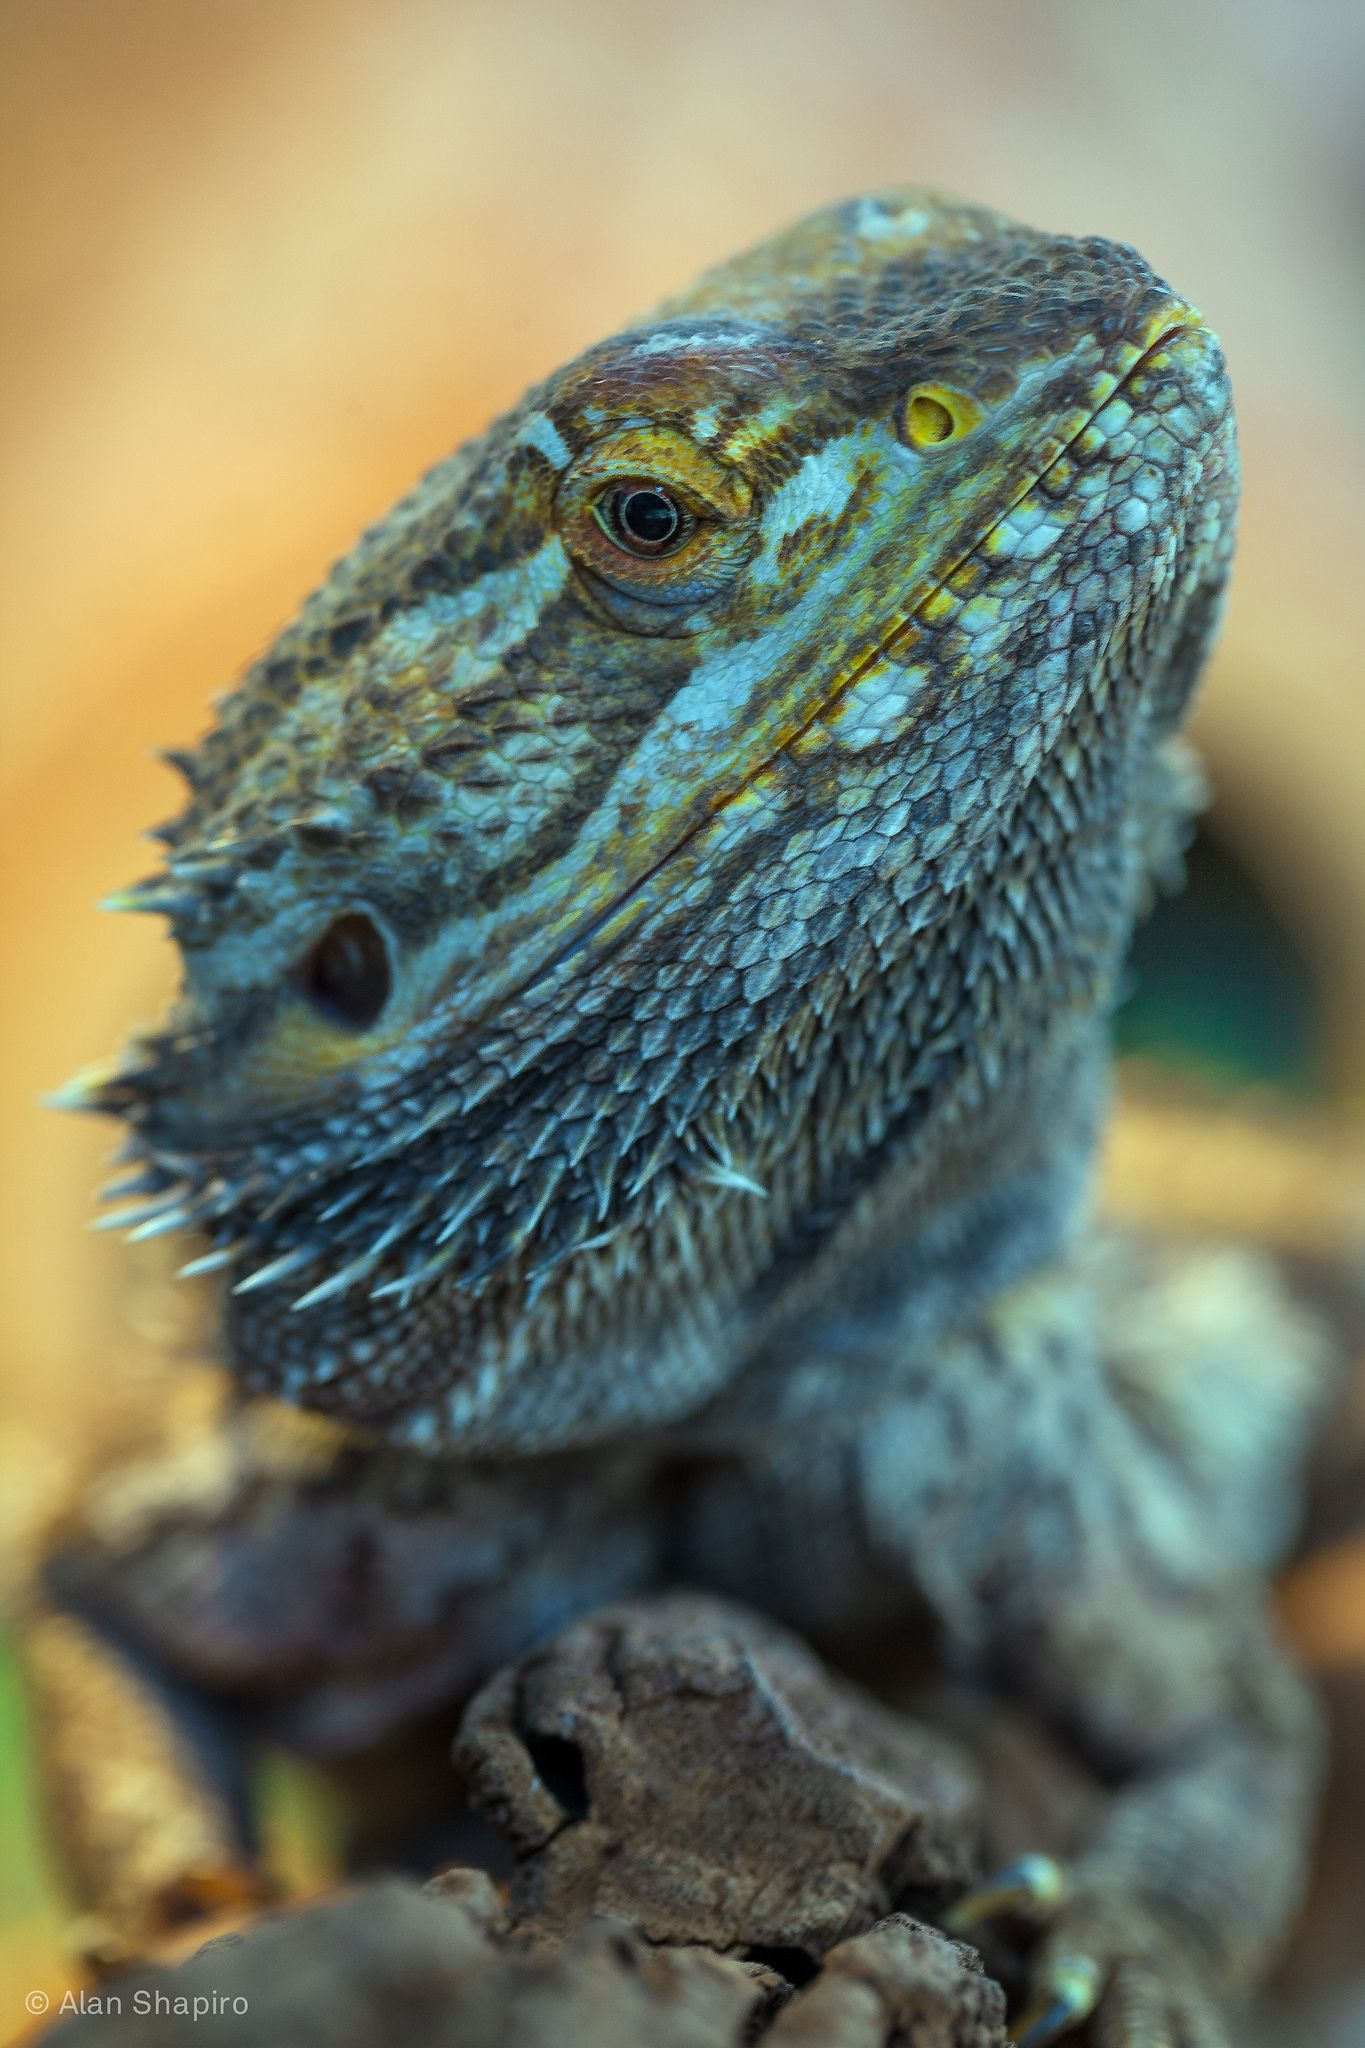 Making friends with Dragons | Bearded dragon, Dragons and Reptiles